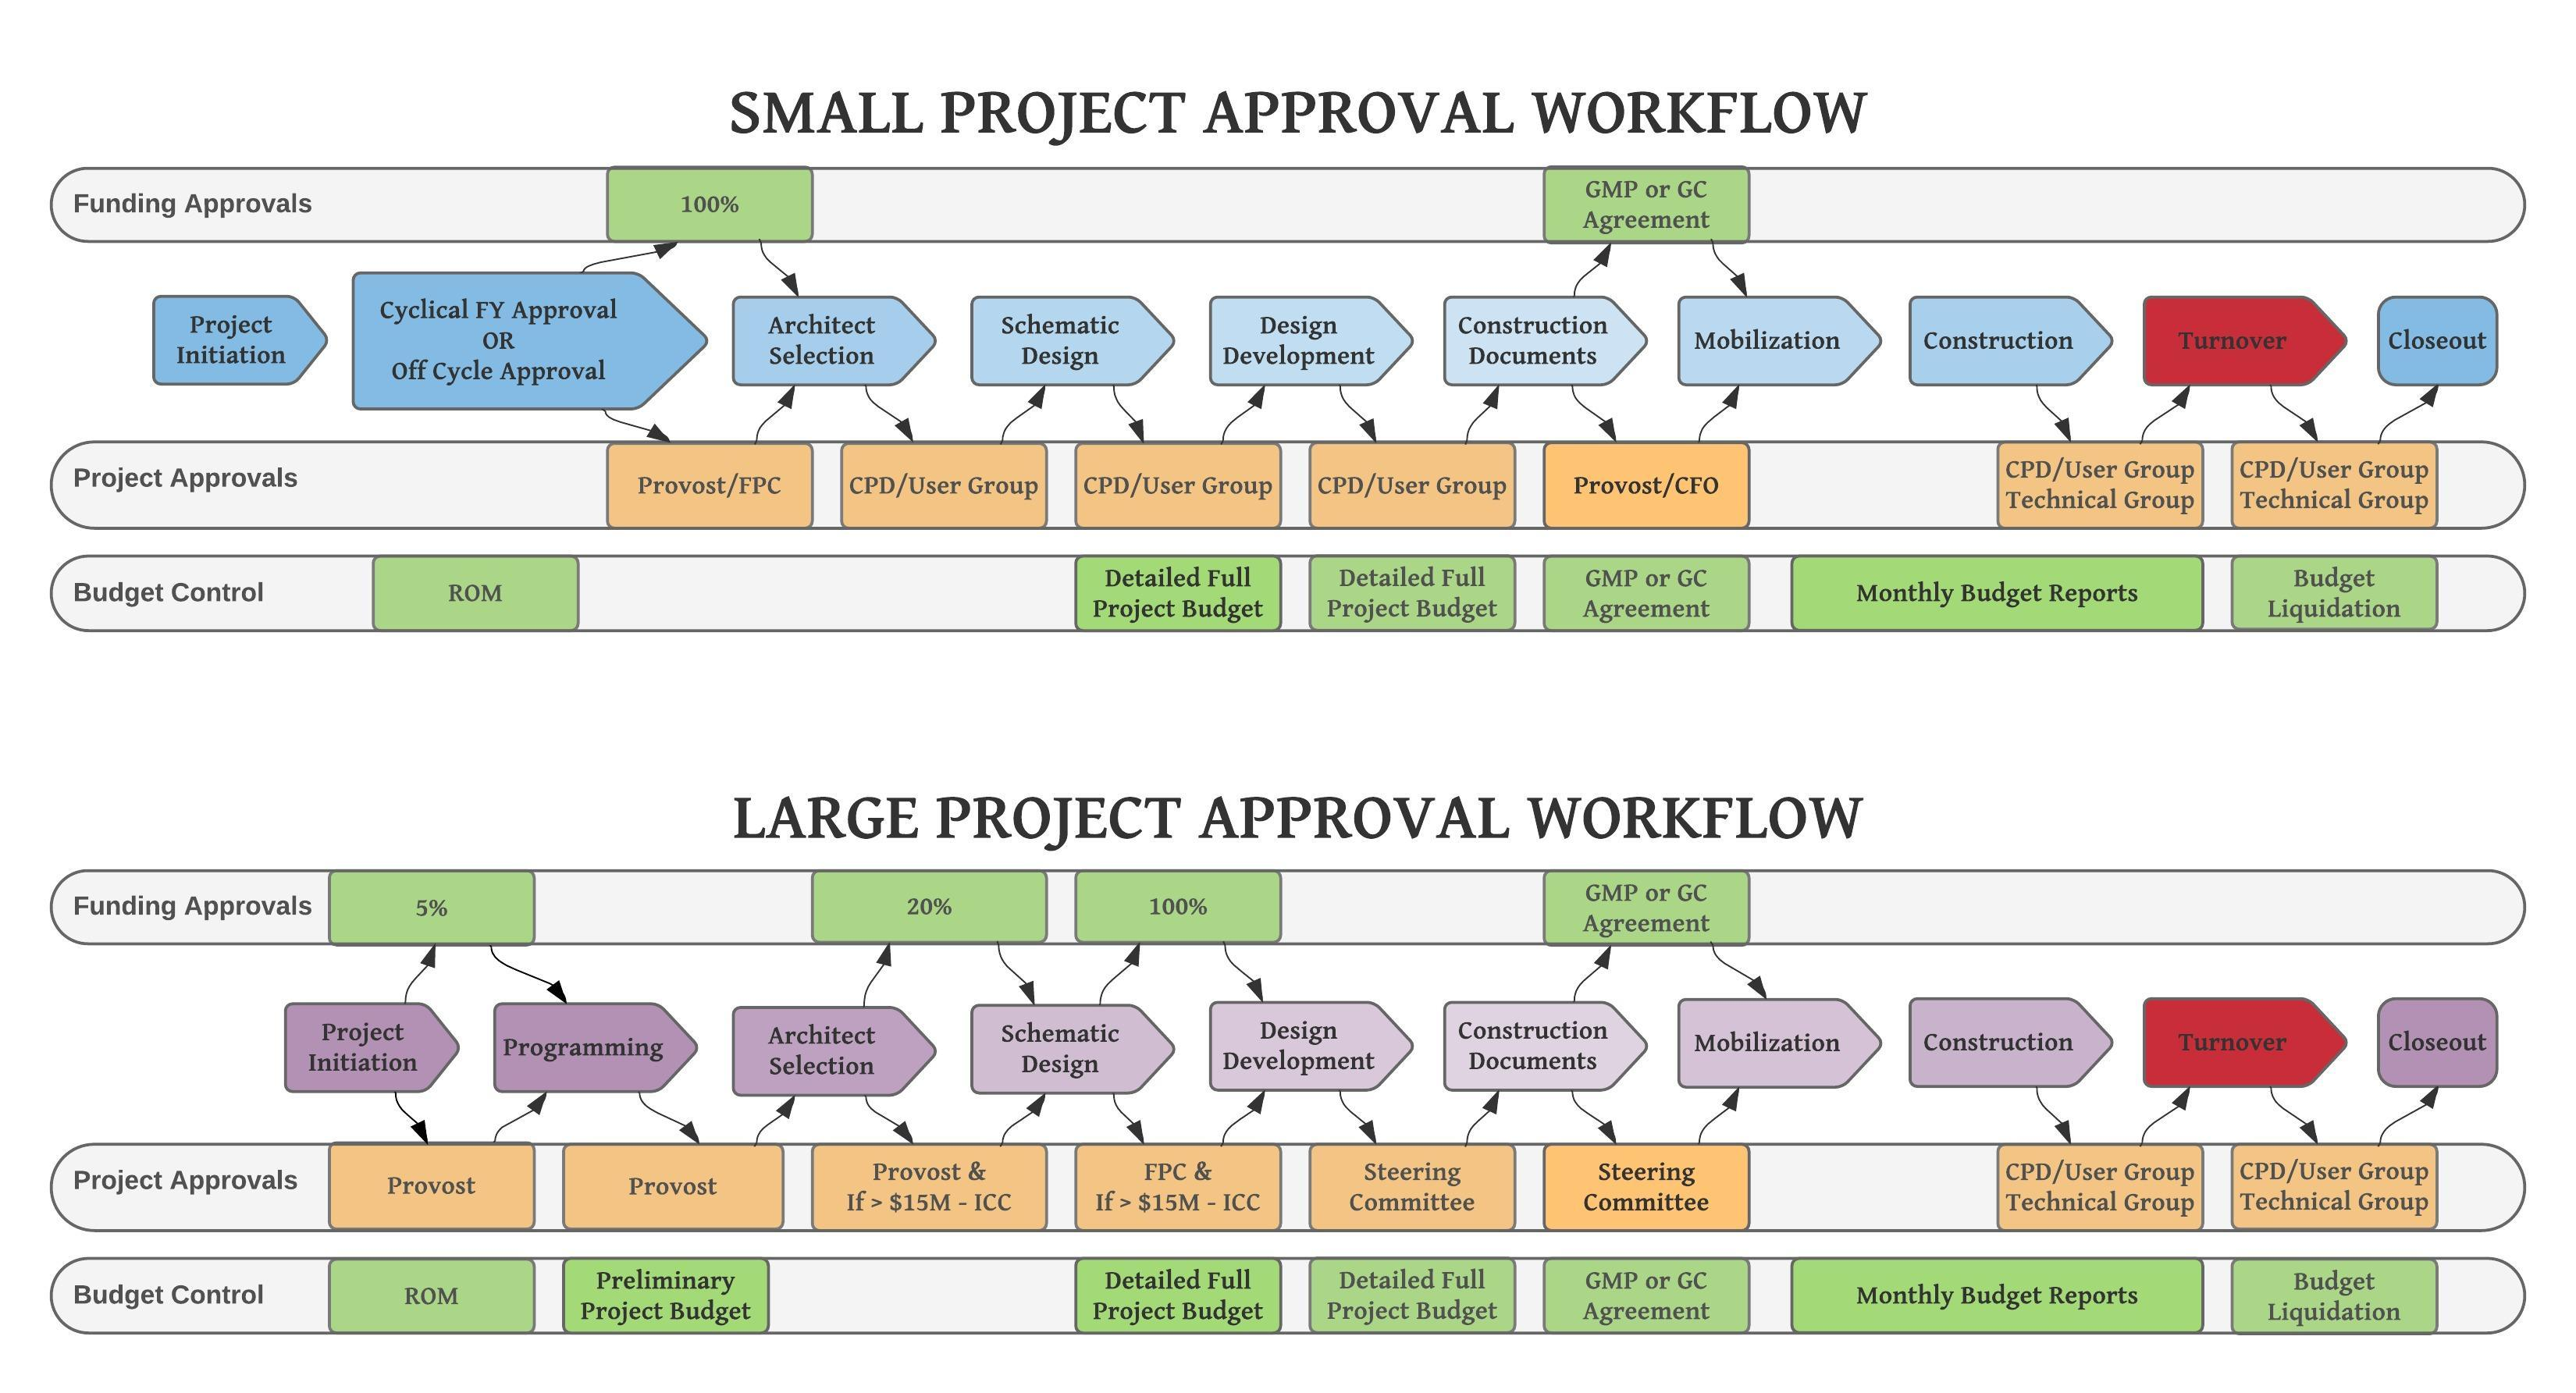 Turnover Approval Workflow